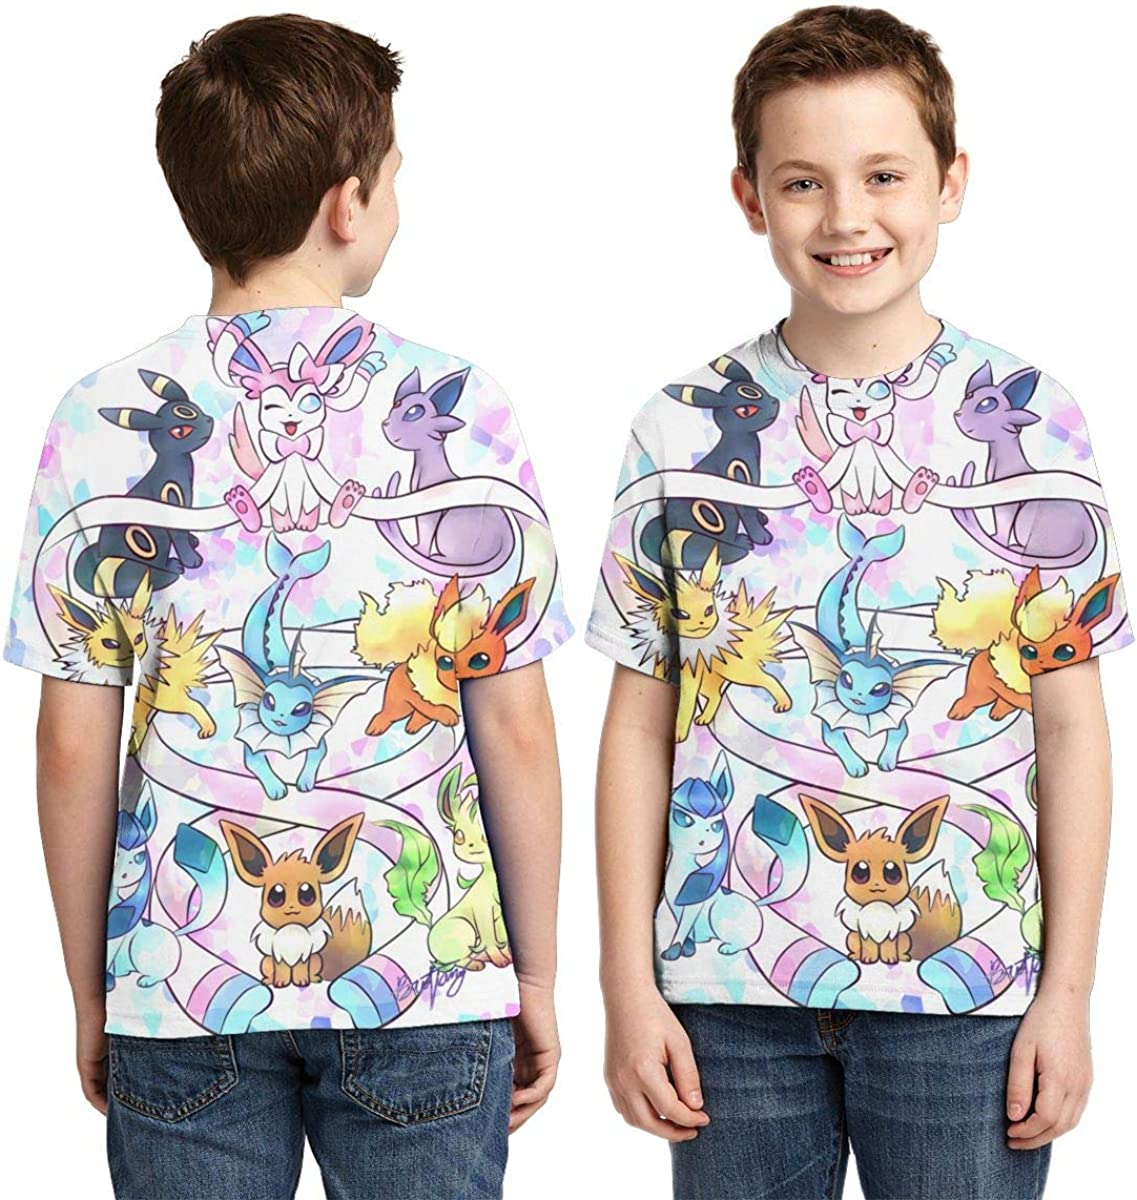 Ffrogont45 /Î/•evee Evolution Boys Print T-Shirt Teens Casual Short Sleeve